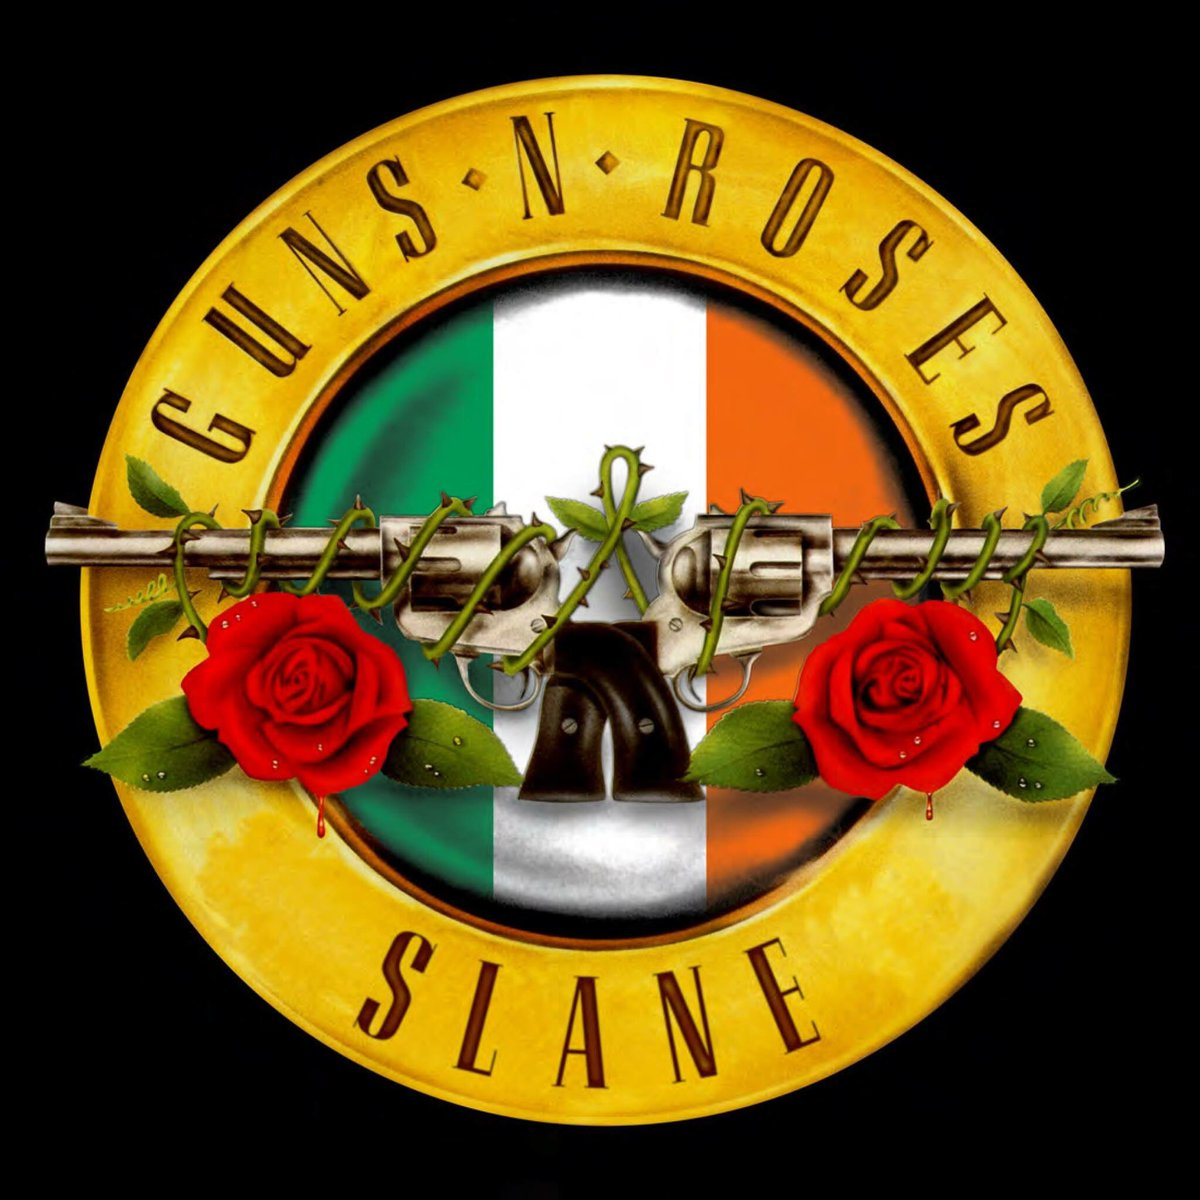 Guns n roses announce tour extension canyon news guns n roses have added more tour dates altavistaventures Gallery